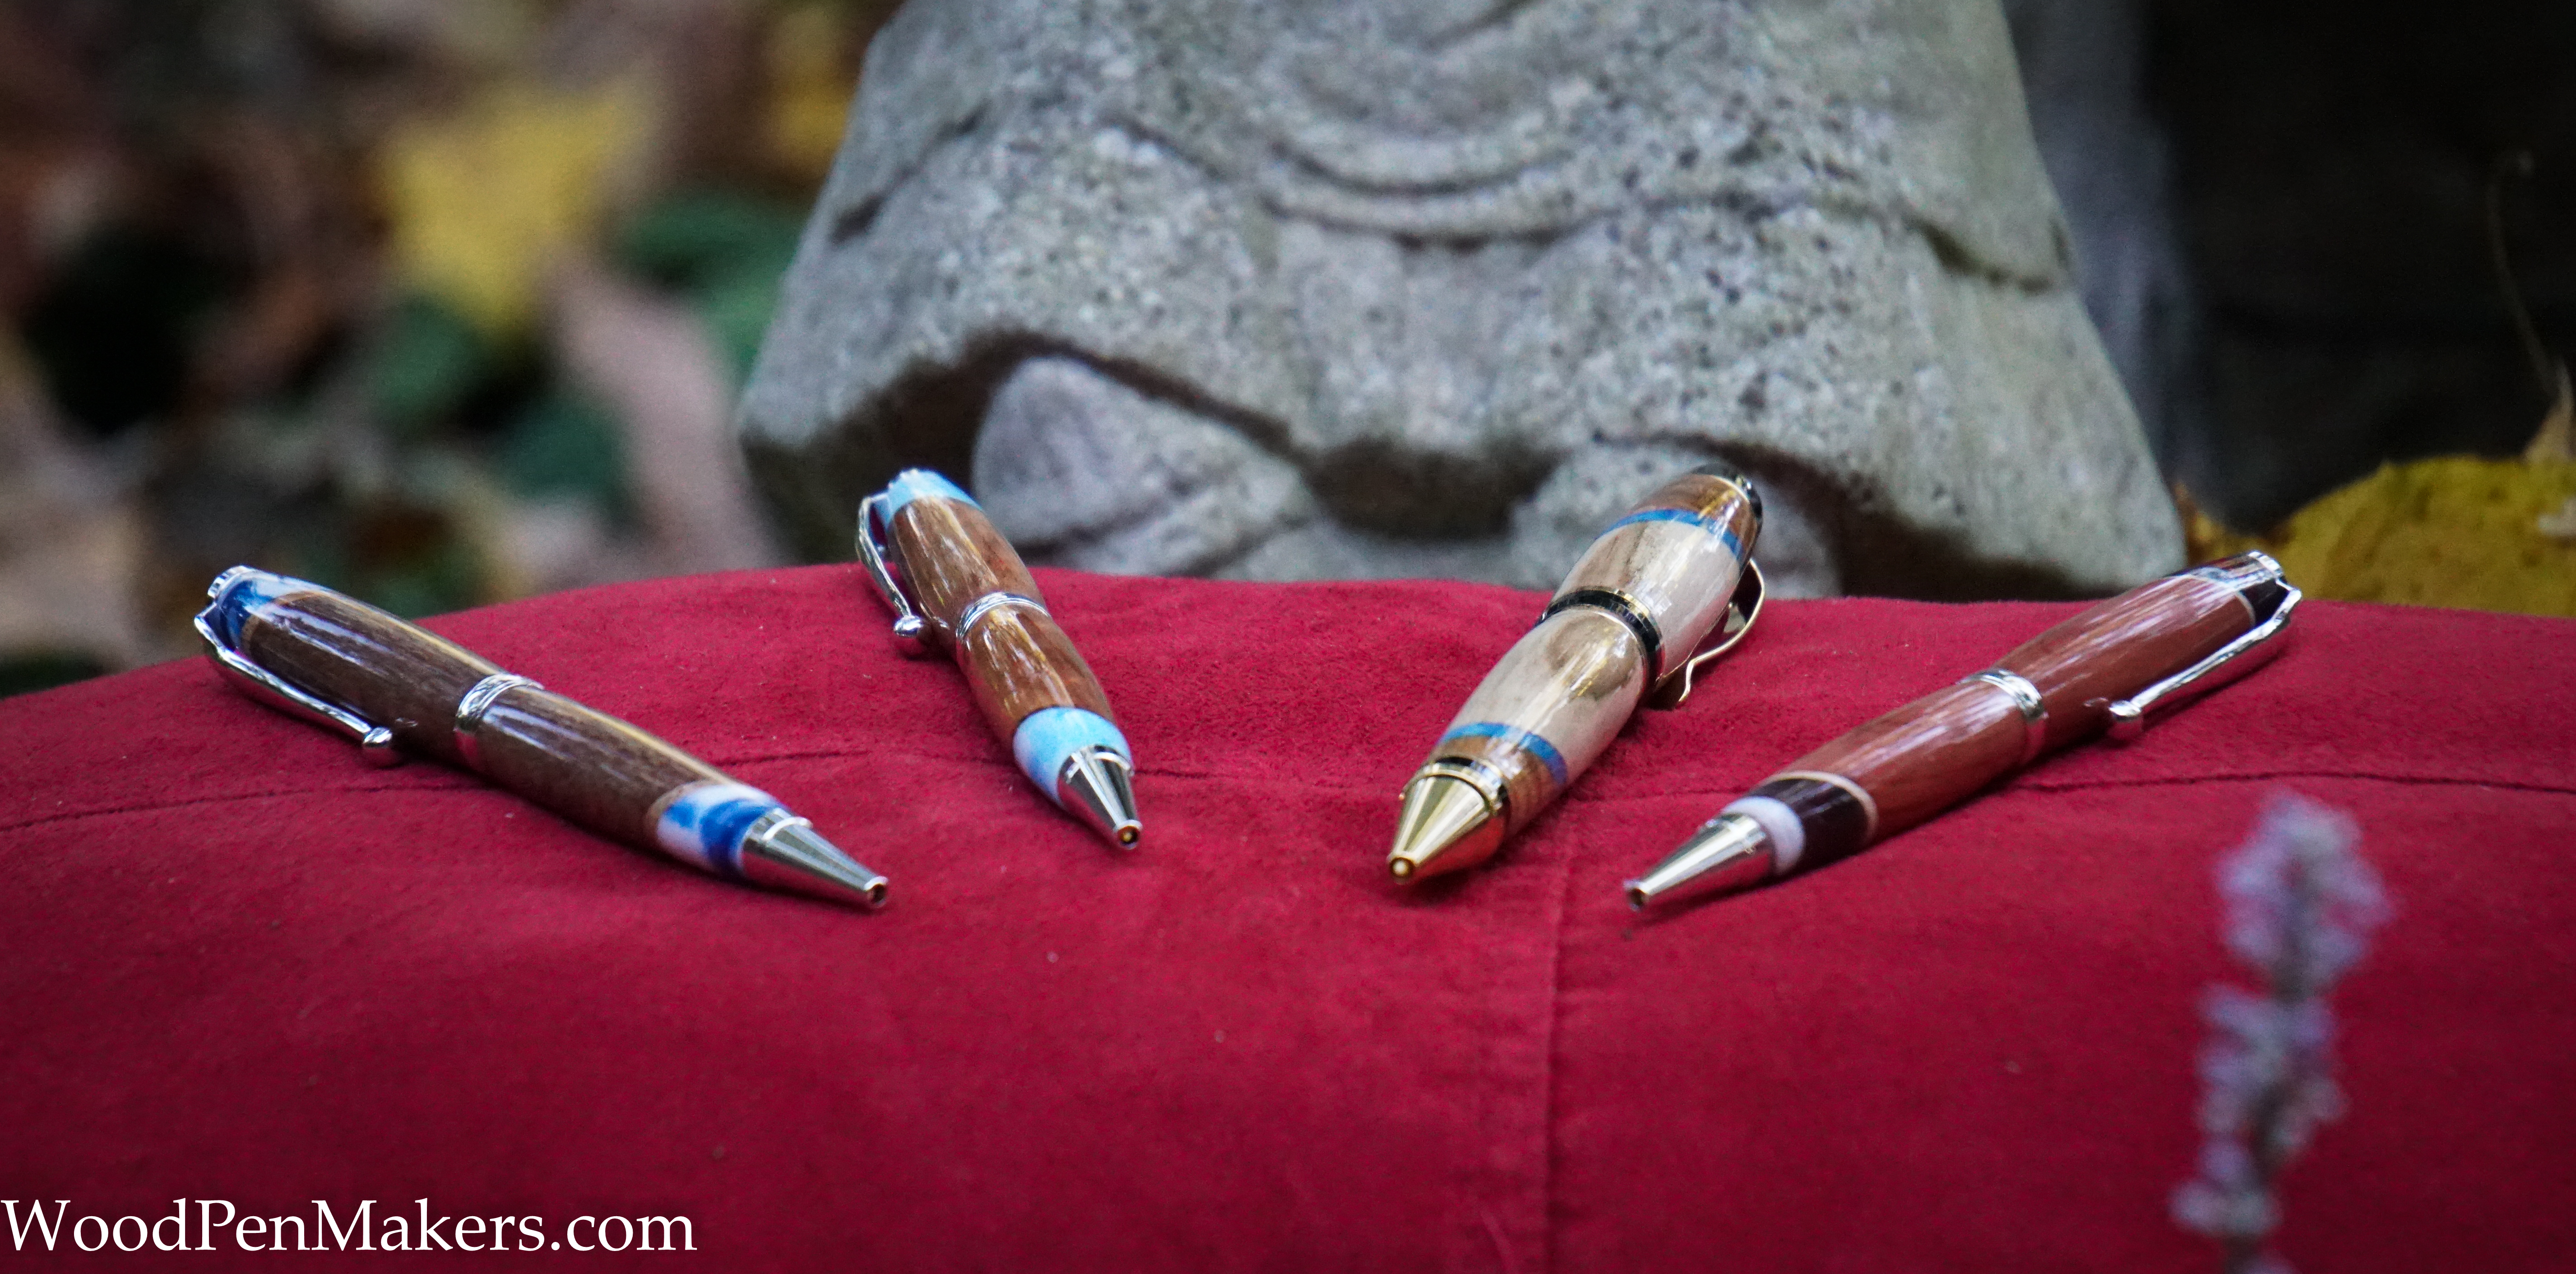 Wood Pens from Wood Pen Makers